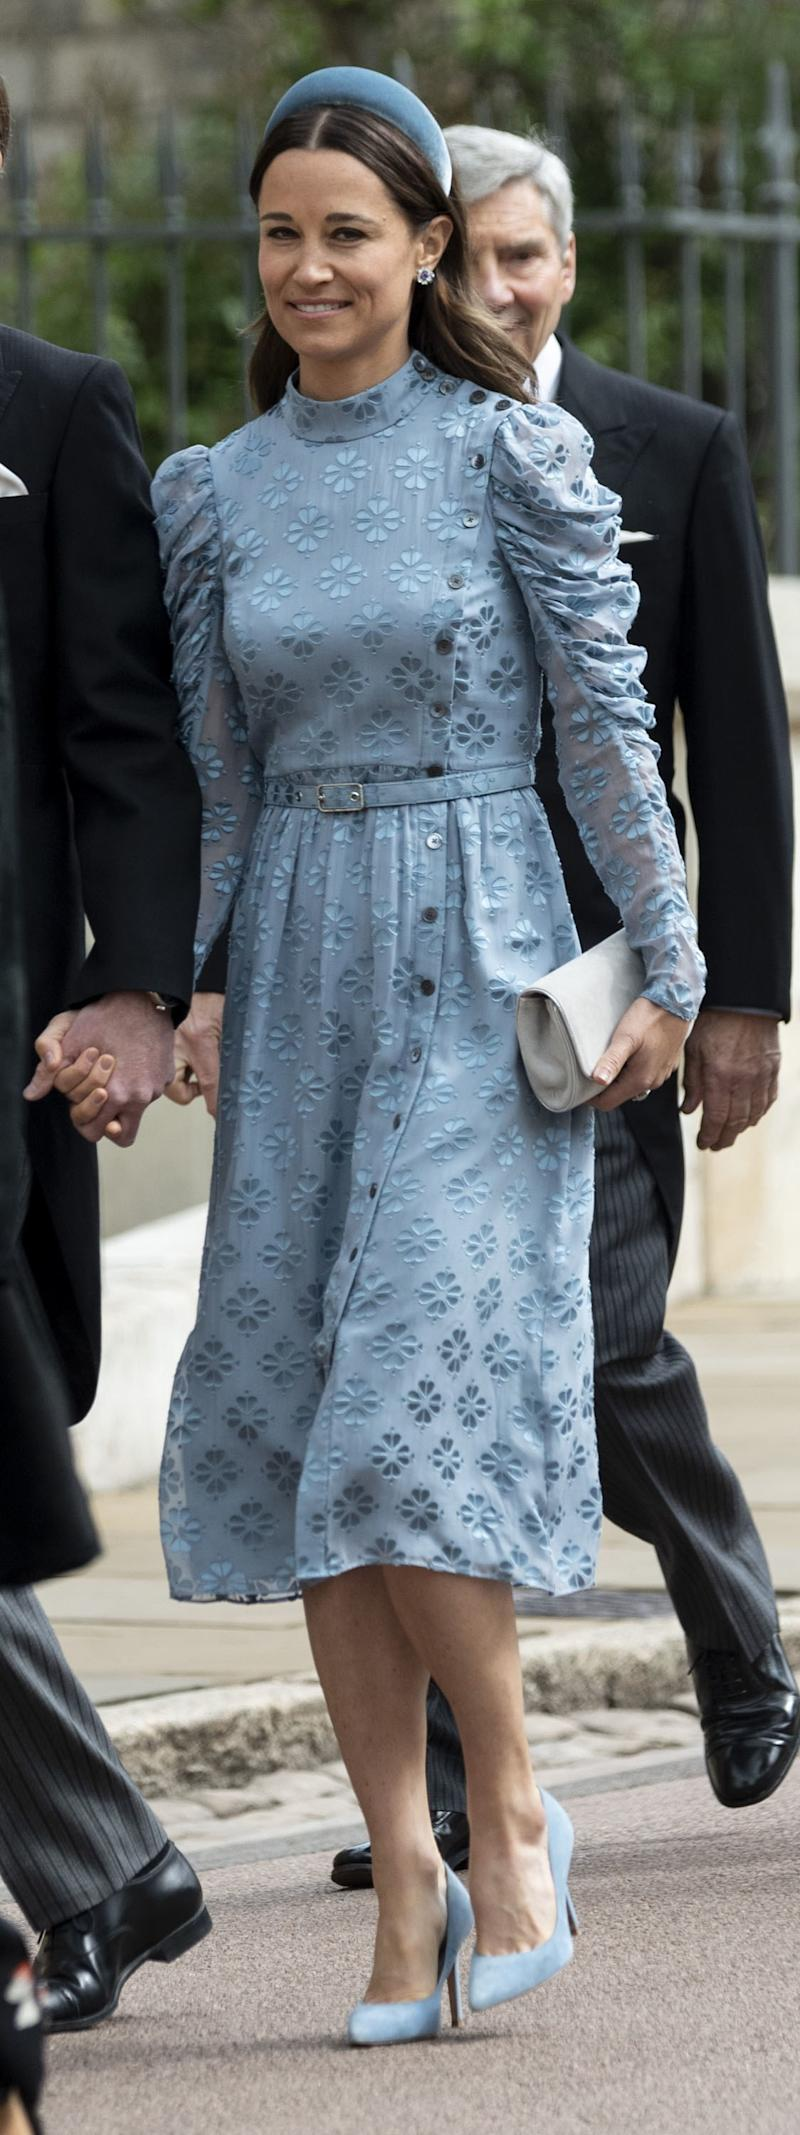 WINDSOR, ENGLAND - MAY 18: Pippa Matthews attends the wedding of Lady Gabriella Windsor and Mr Thomas Kingston at St George's Chapel, Windsor Castle on May 18, 2019 in Windsor, England. (Photo by Mark Cuthbert/UK Press via Getty Images)